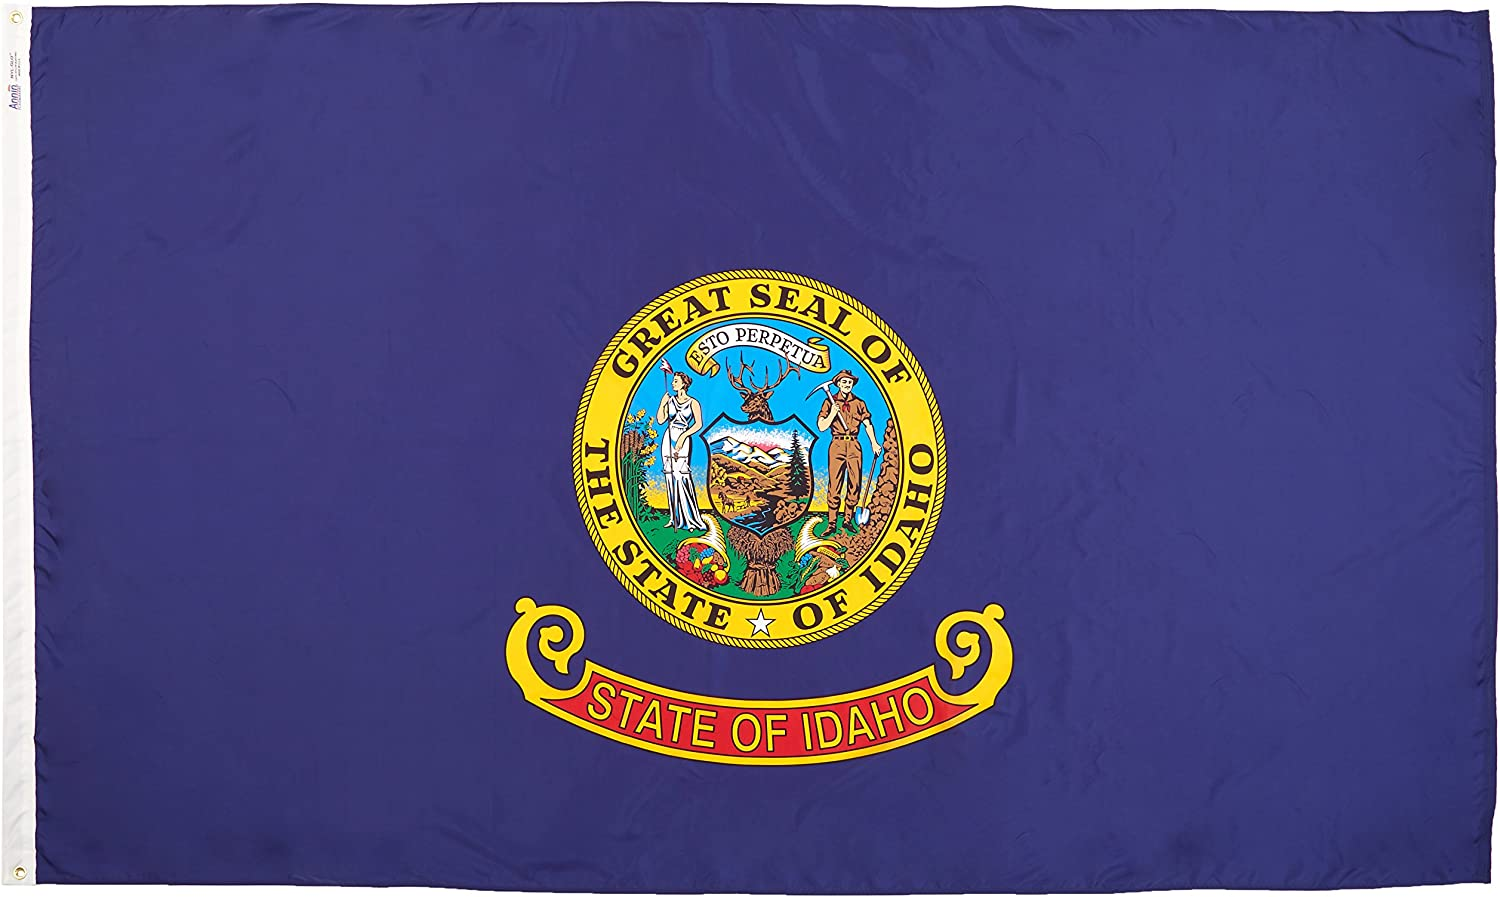 Annin Flagmakers Model 141380 Idaho Flag Nylon SolarGuard NYL-Glo, 5x8 ft, 100% Made in USA to Official State Design Specifications